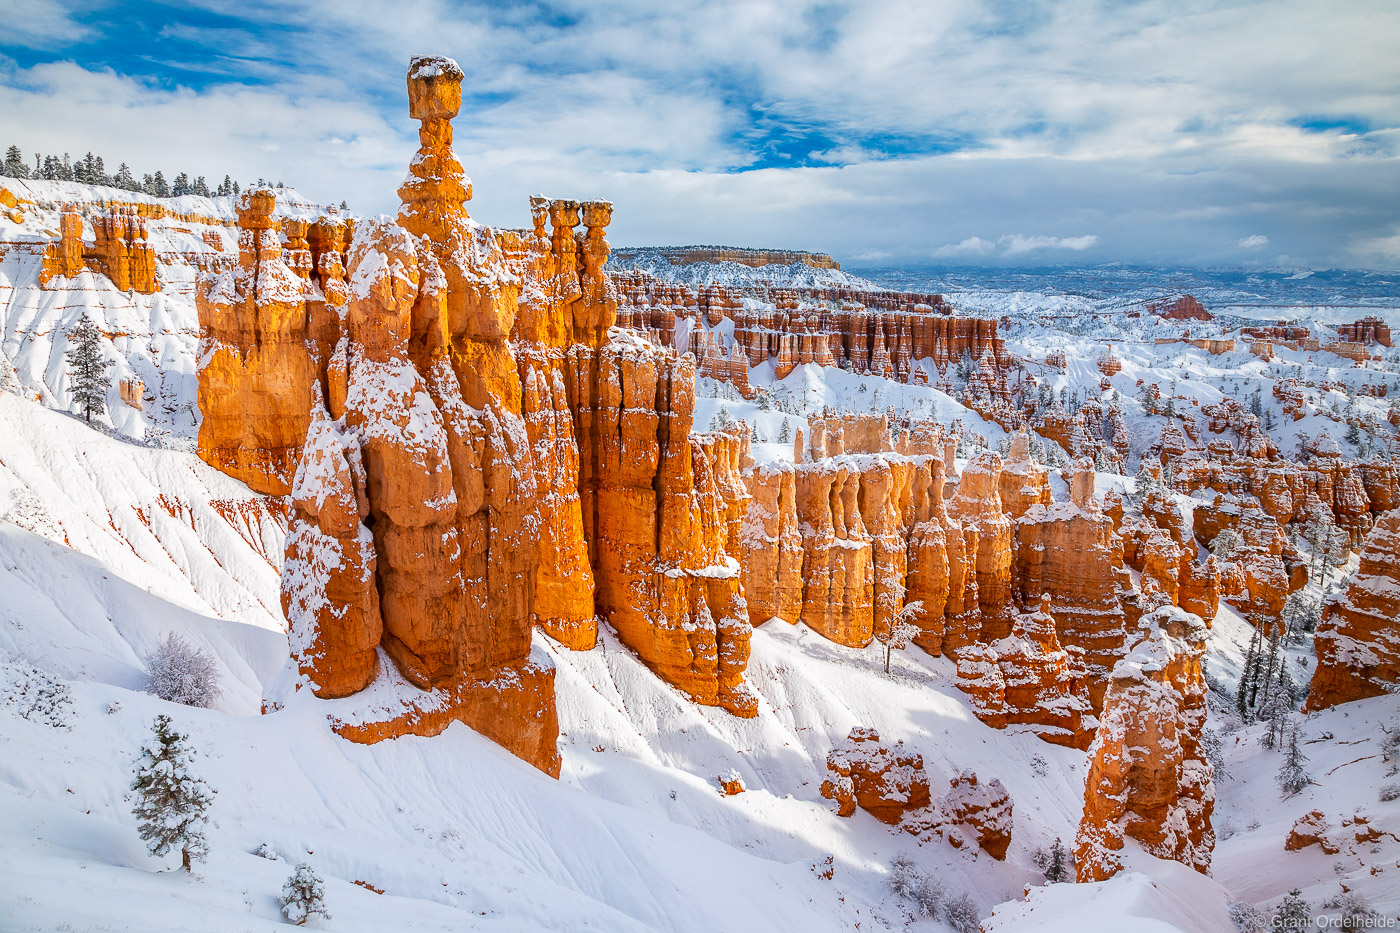 Morning light after a fresh snow storm in Utah's Bryce Canyon National Park.